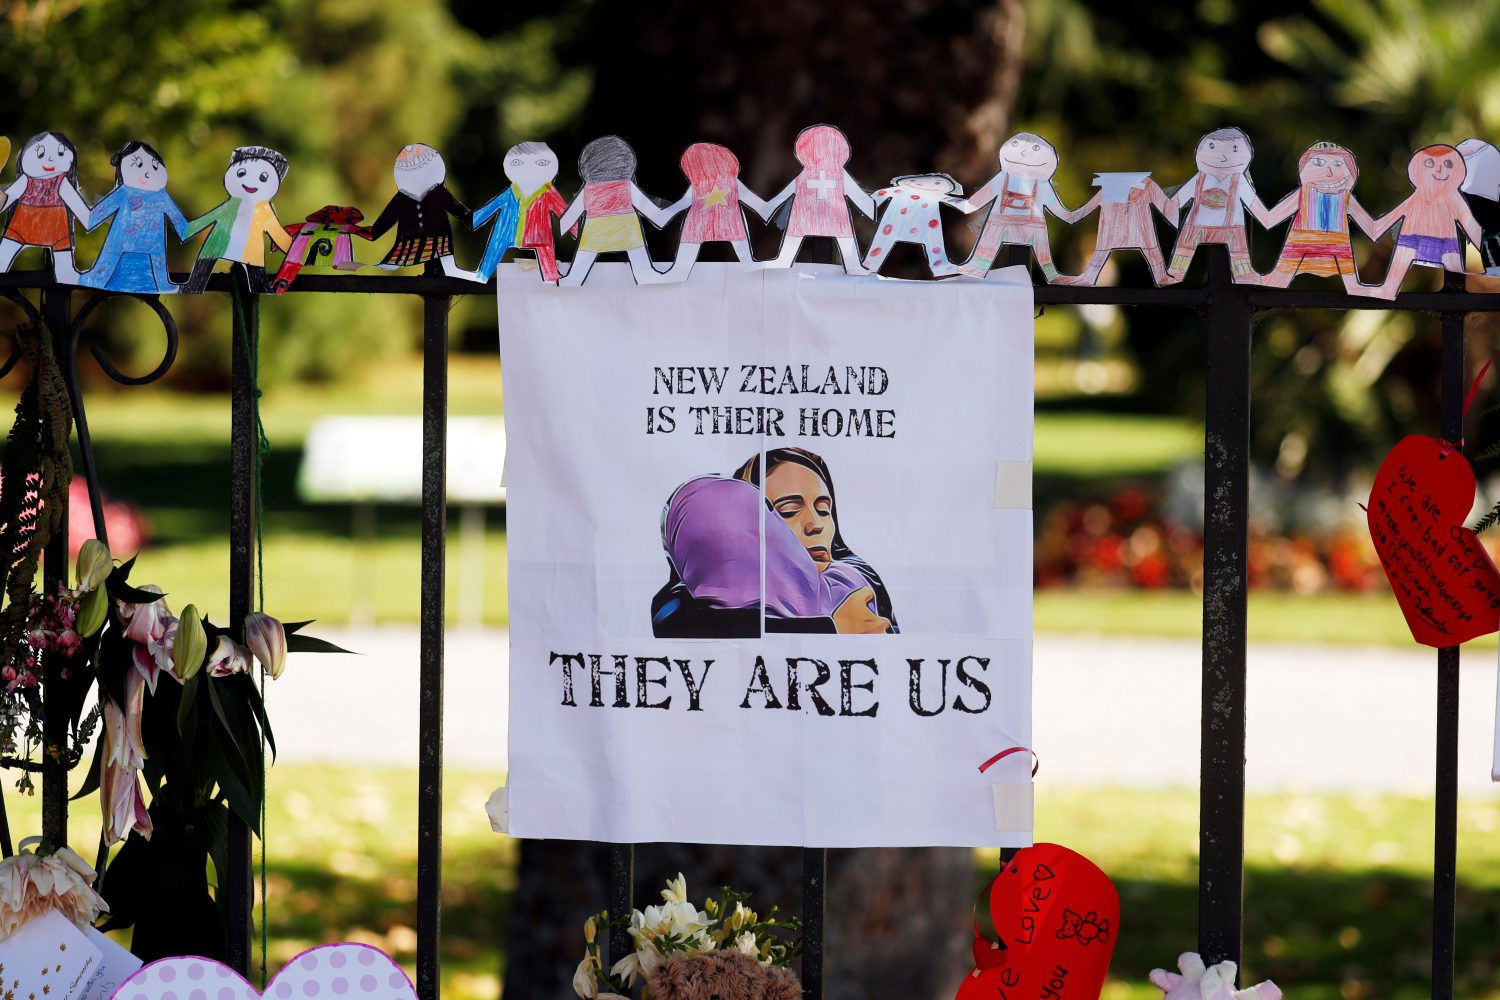 A poster hangs at a memorial site for victims of Friday's shooting, in front of Christchurch Botanic Gardens in Christchurch, New Zealand March 19, 2019. REUTERS/Jorge Silva